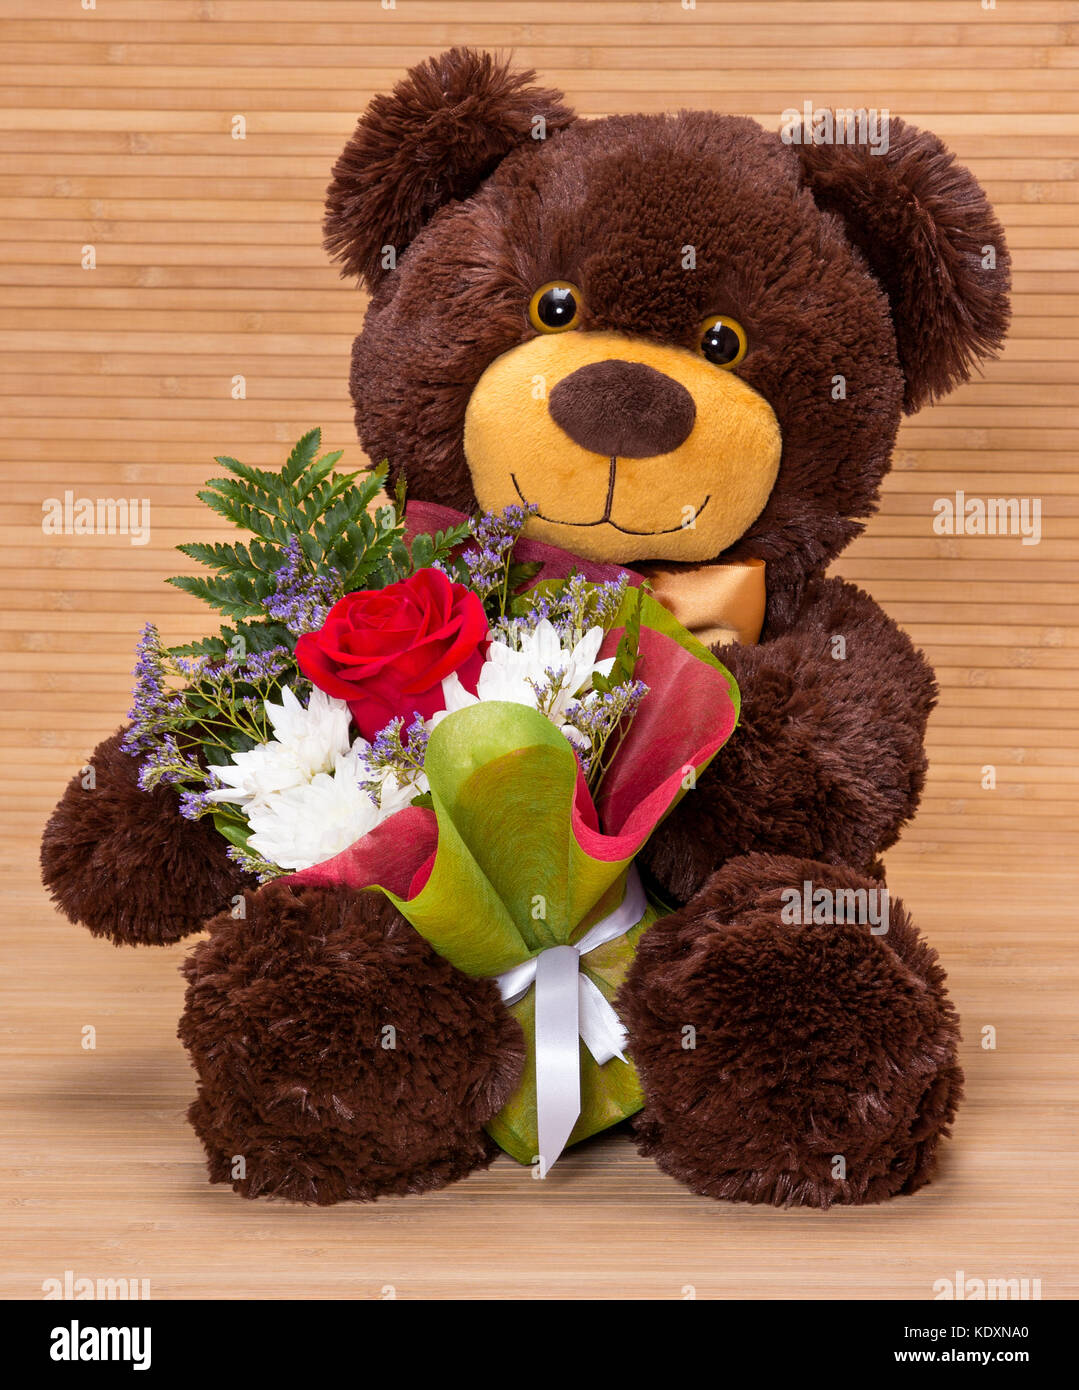 Smiling teddy bear holding beautiful floral bouquet in paws - Stock Image